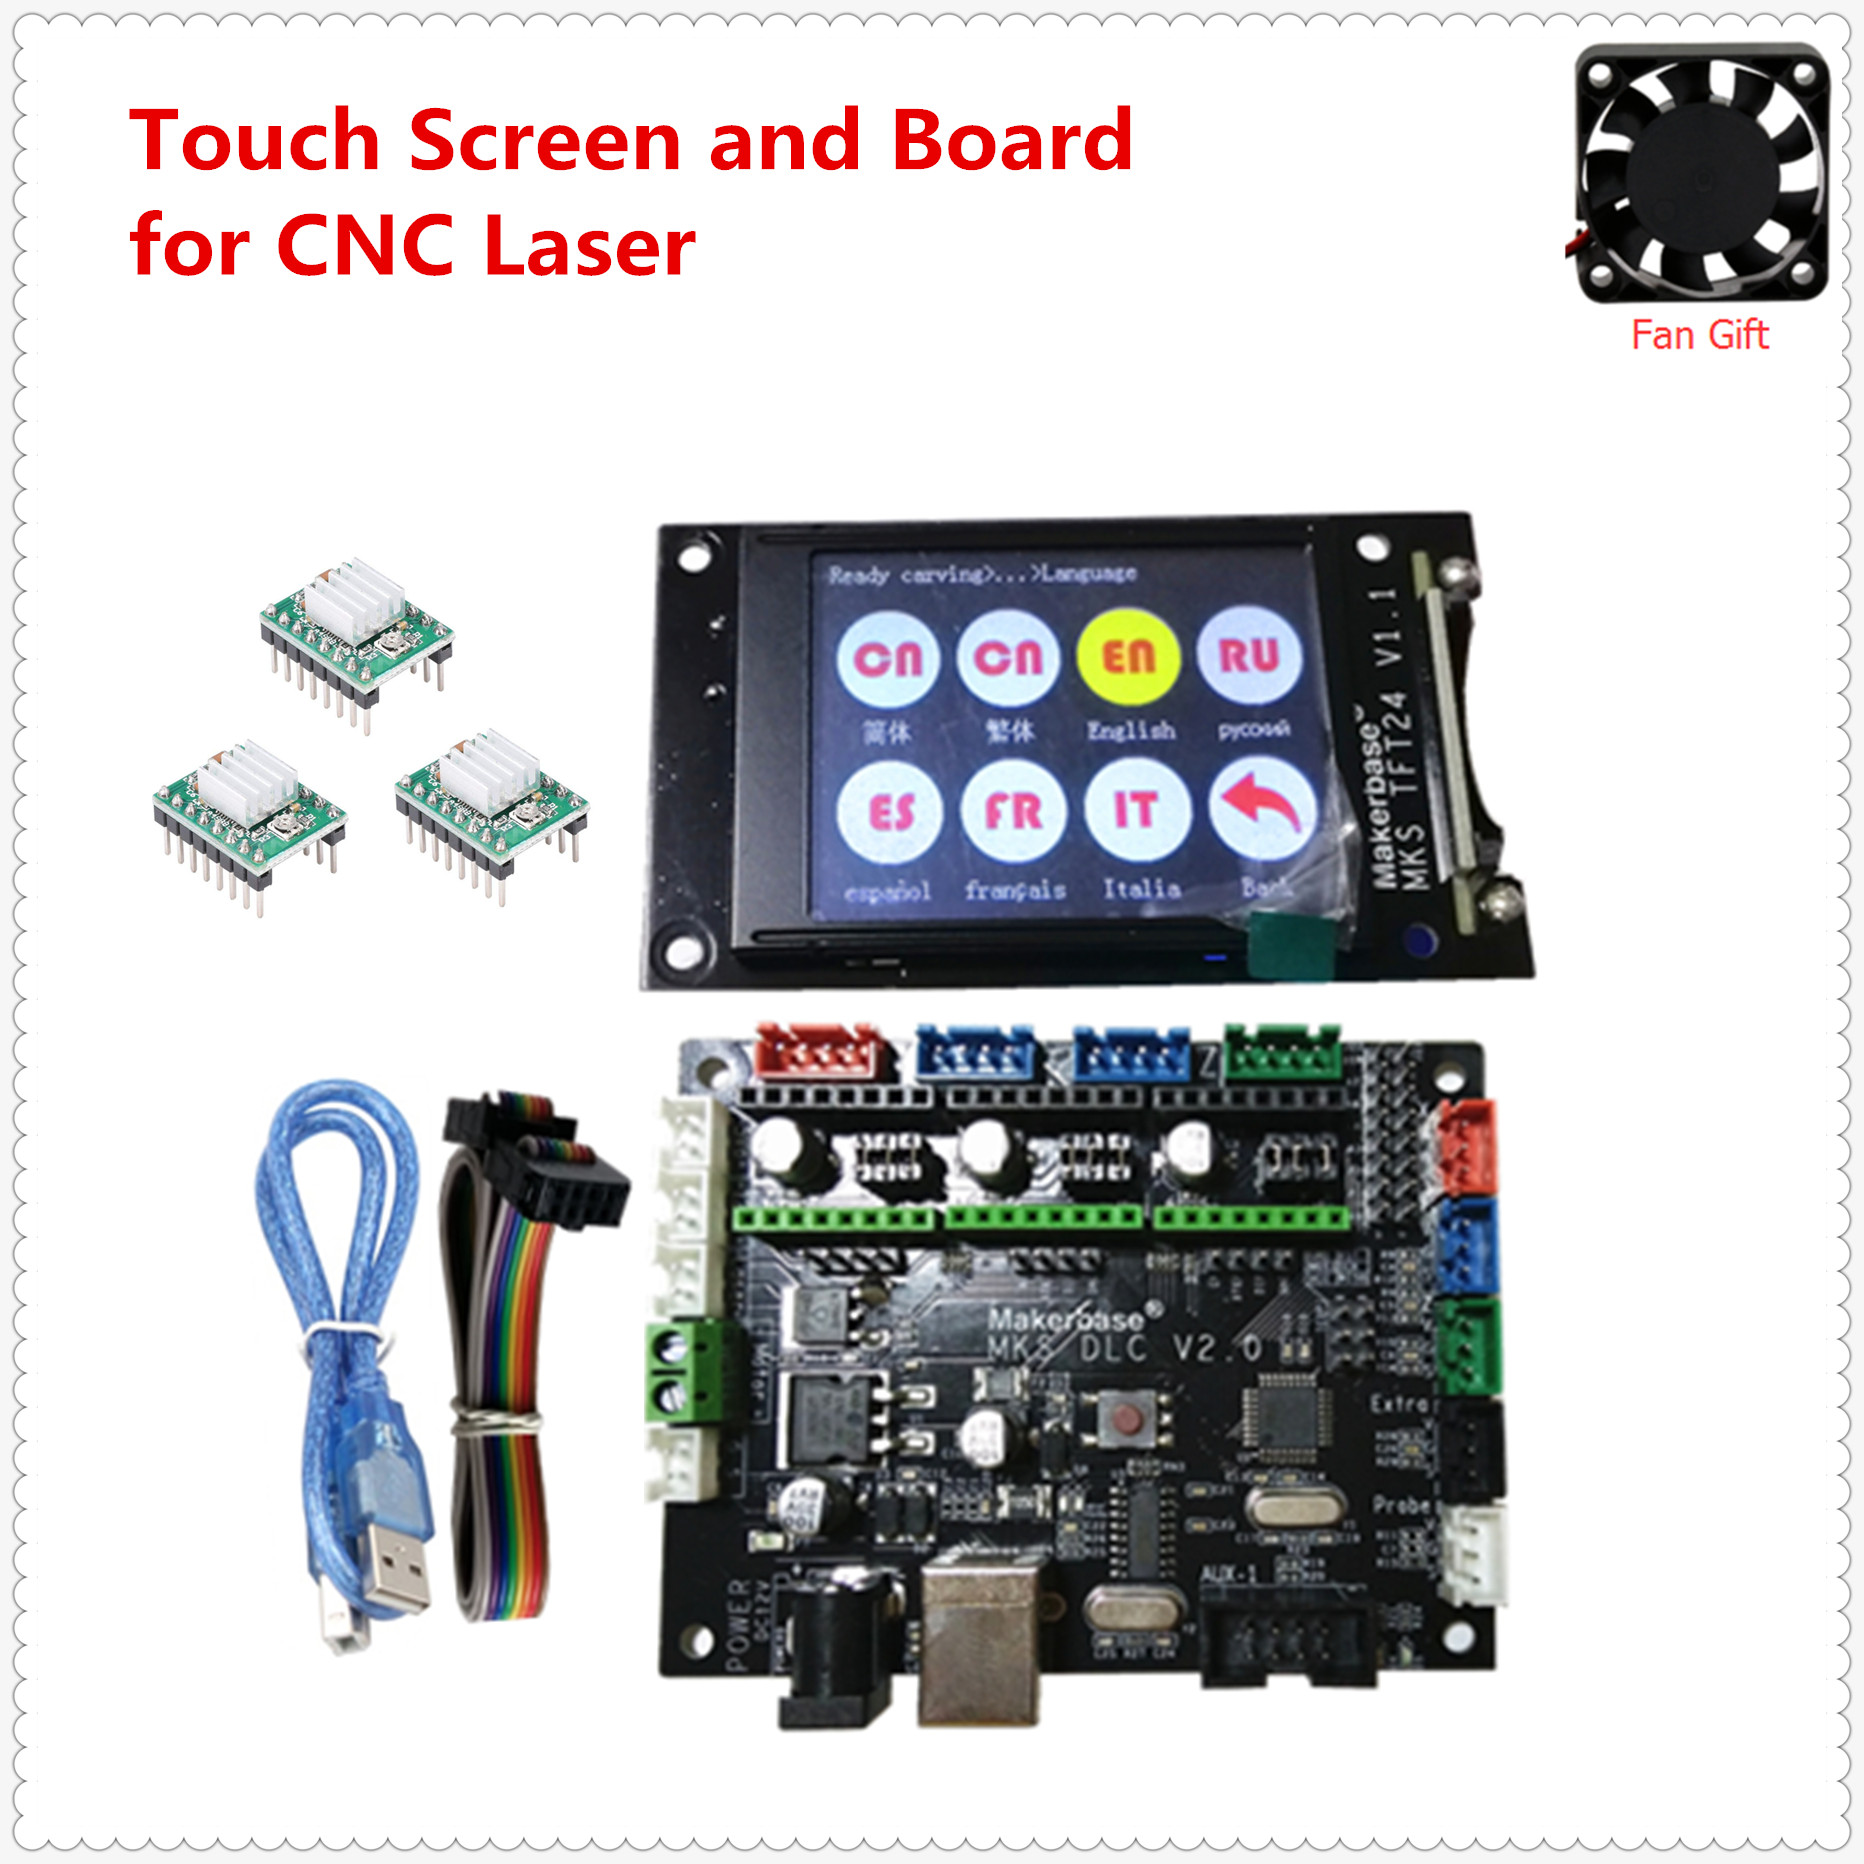 GRBL V1 1 expansion plate MKS DLC v2 0 motherboard CNC offline LCD display replace cnc shield v3 UNO R3 CNC 3018 PRO upgrade kit